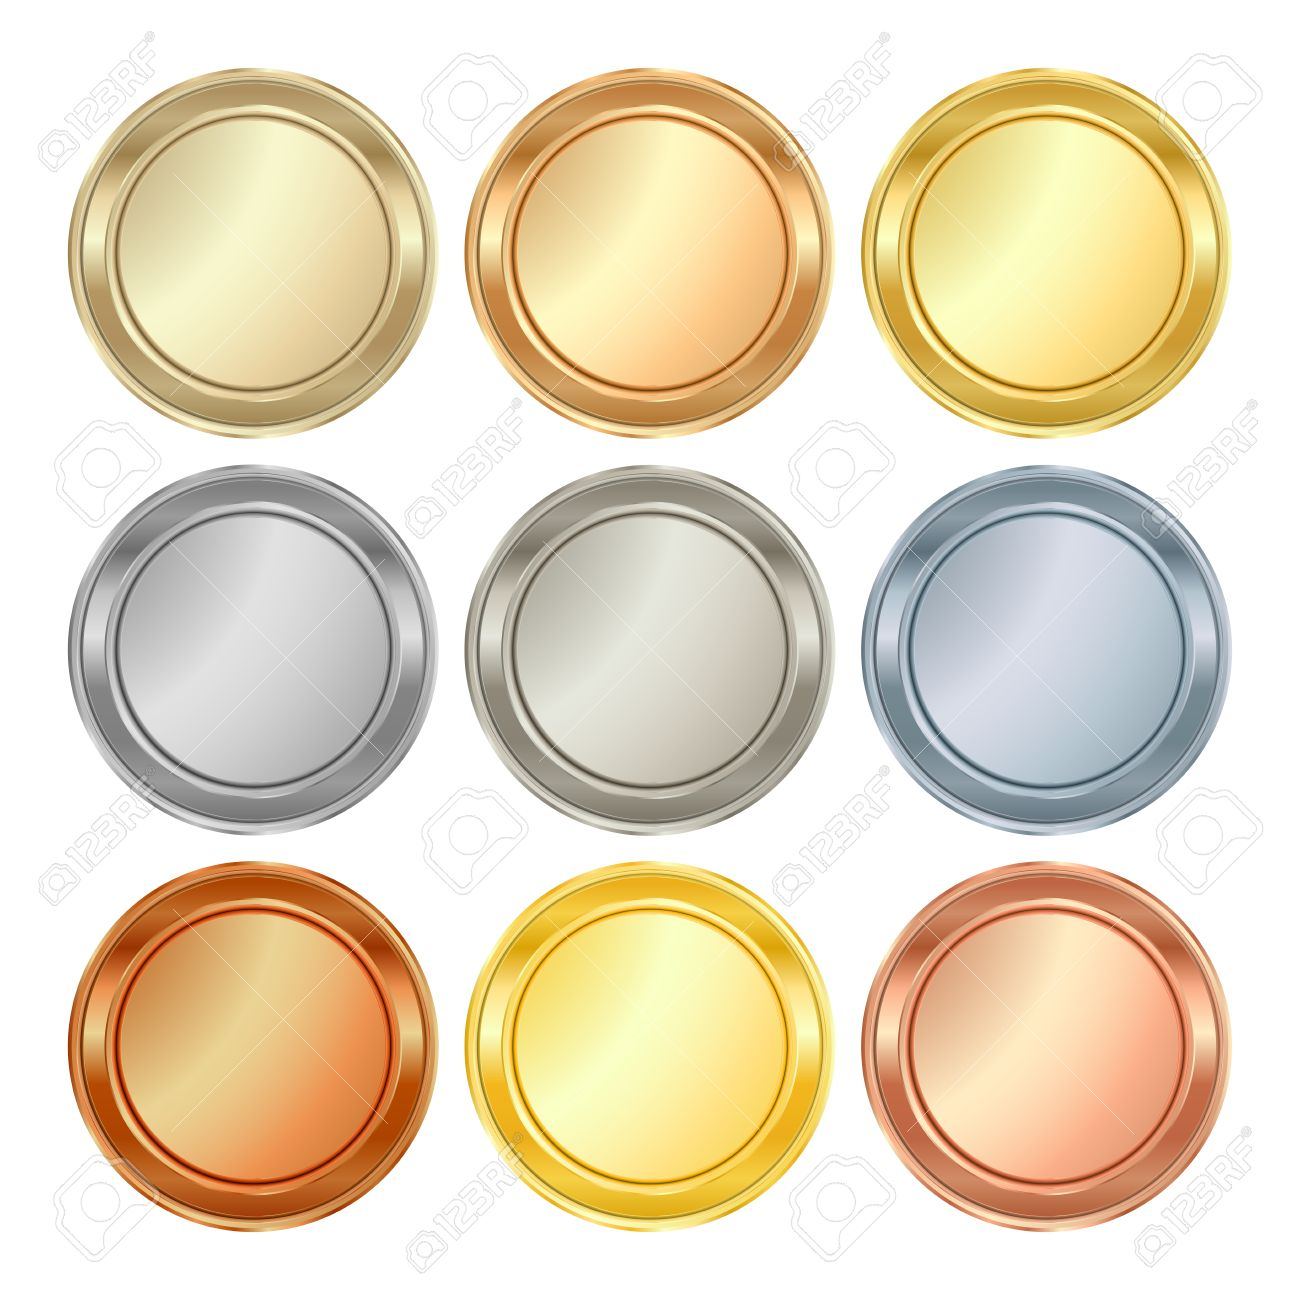 vector round blank templates from gold platinum silver bronze copper brass which can be used as print medals badges coins medals tags labels - 55812973